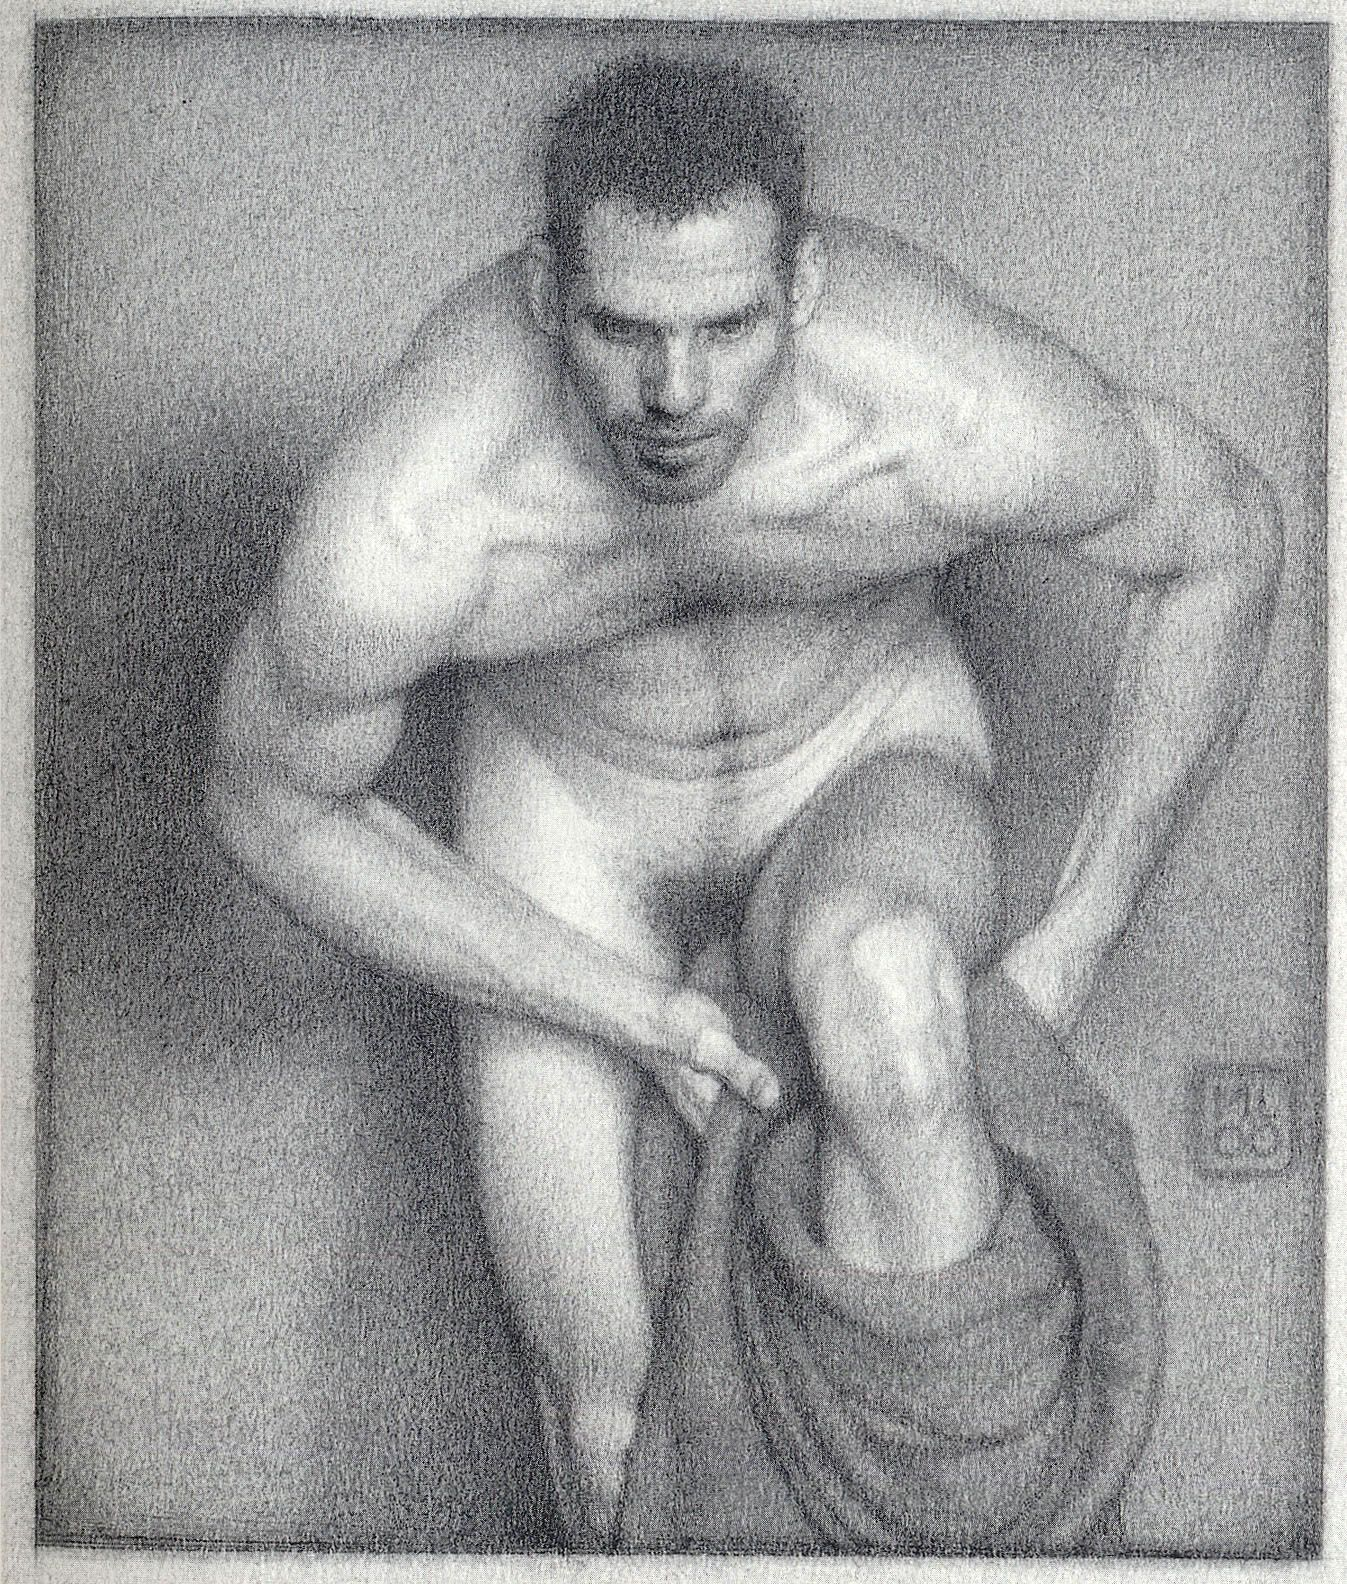 Michael Leonard, Bather With Intent (SOLD), 2000, graphite pencil on paper, 9 x 7 5/8 inches